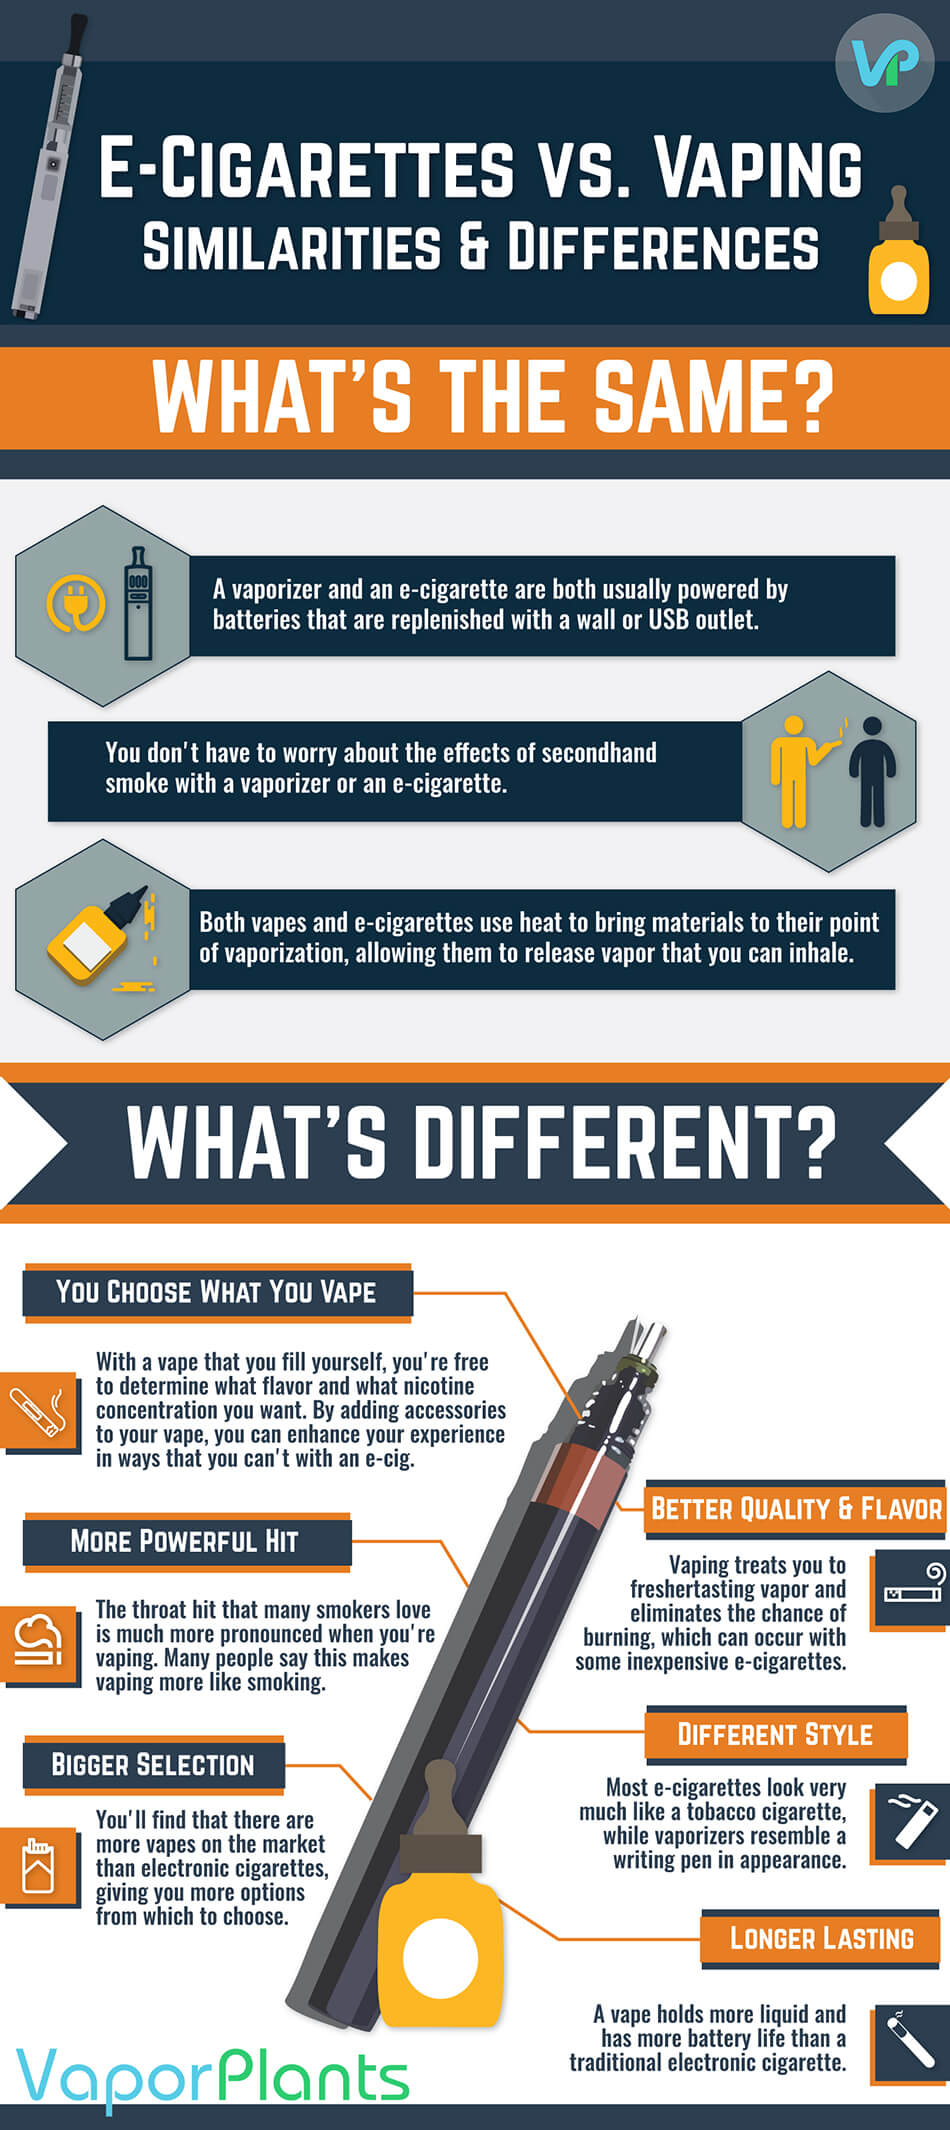 Electronic cigarettes vs vape pens explained with differences on a infographic infomational chart by vaporplants